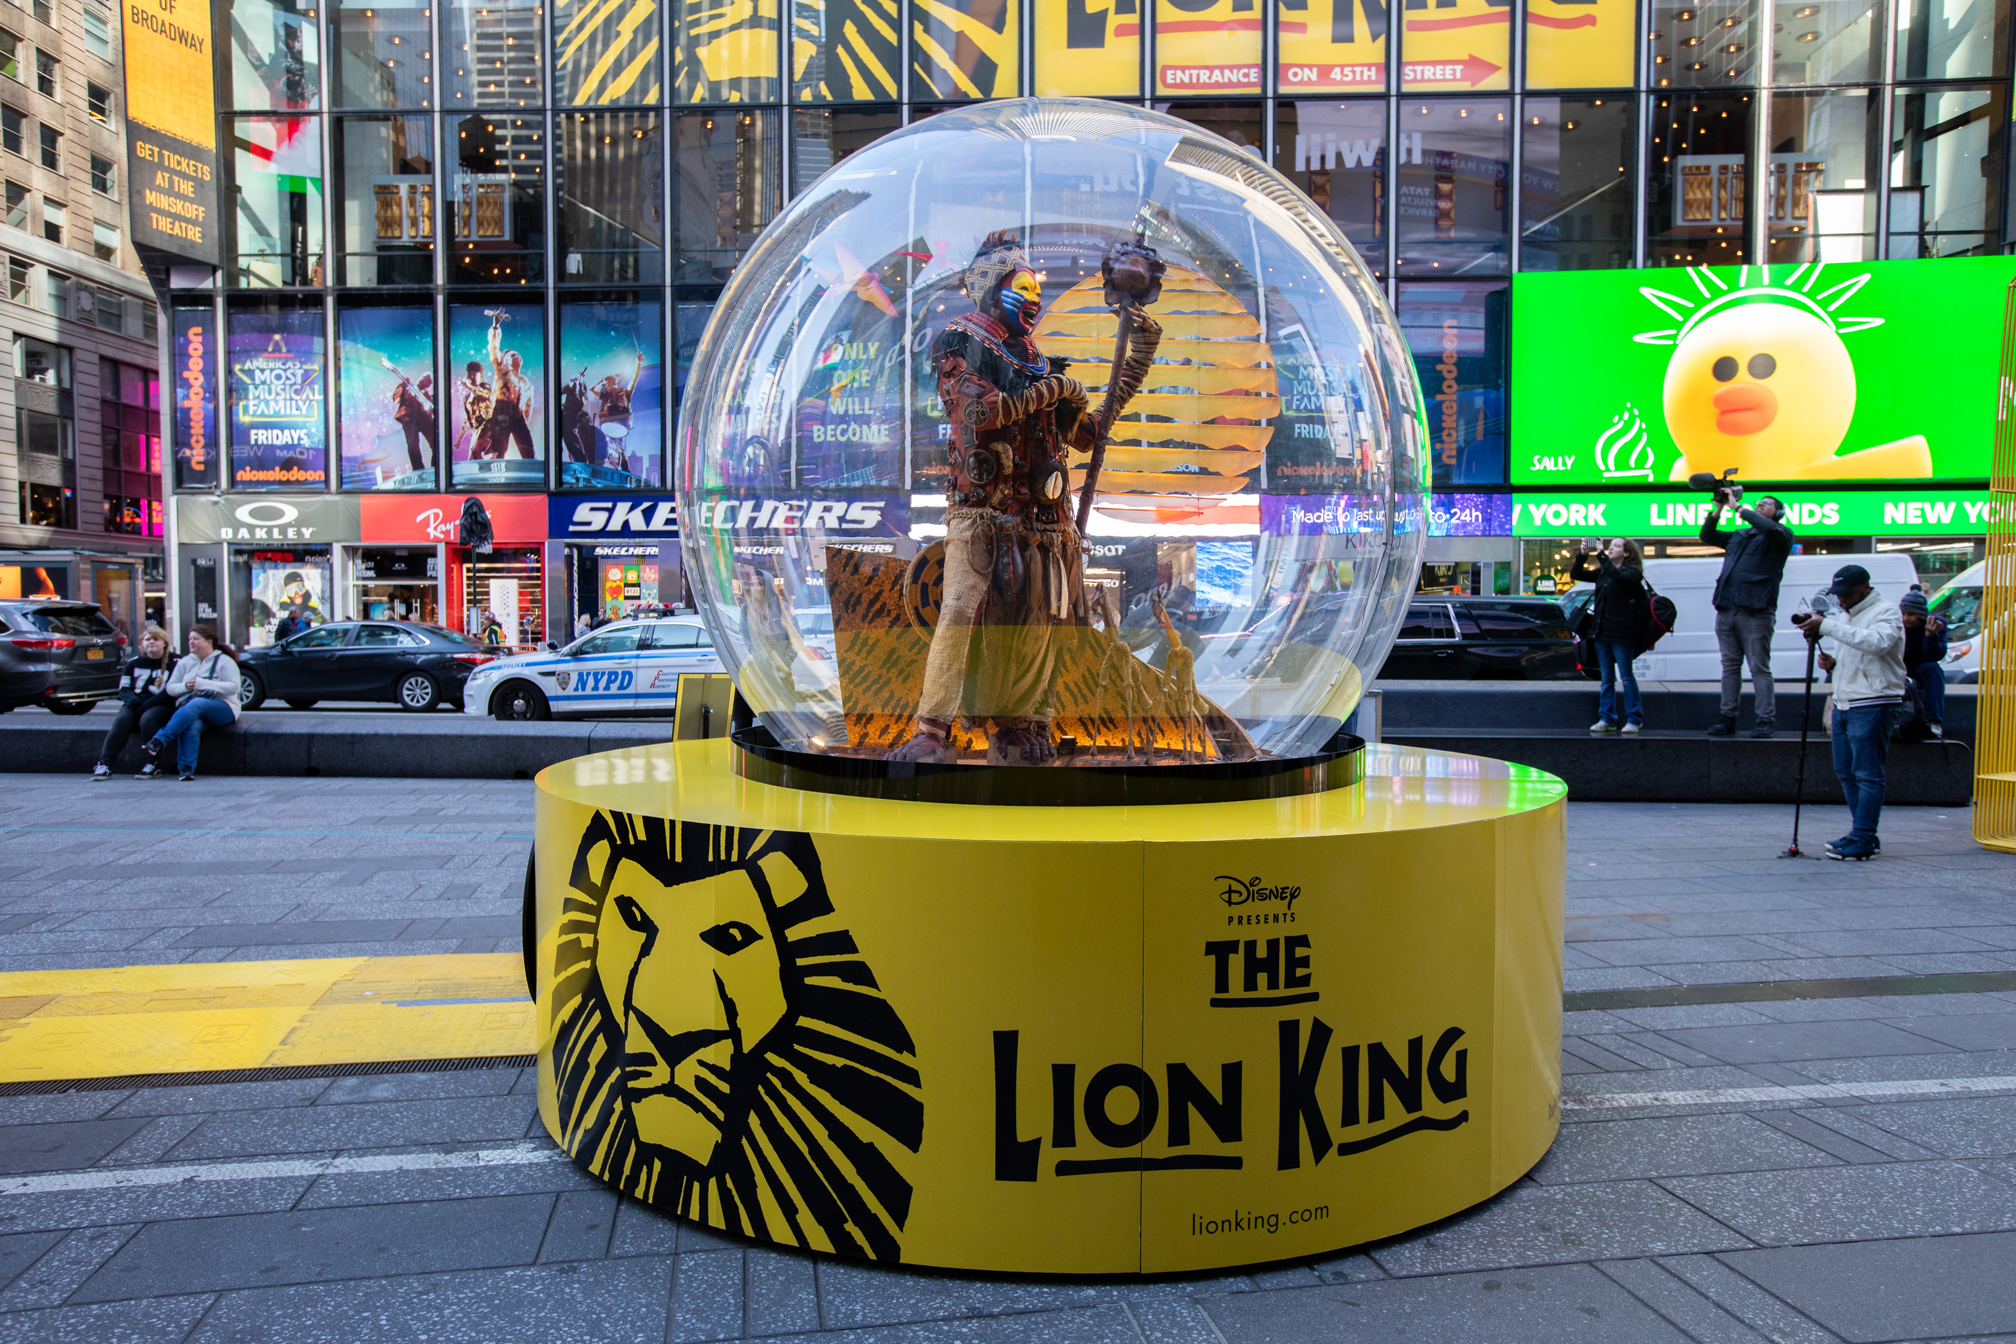 LION KING SNOW GLOBE